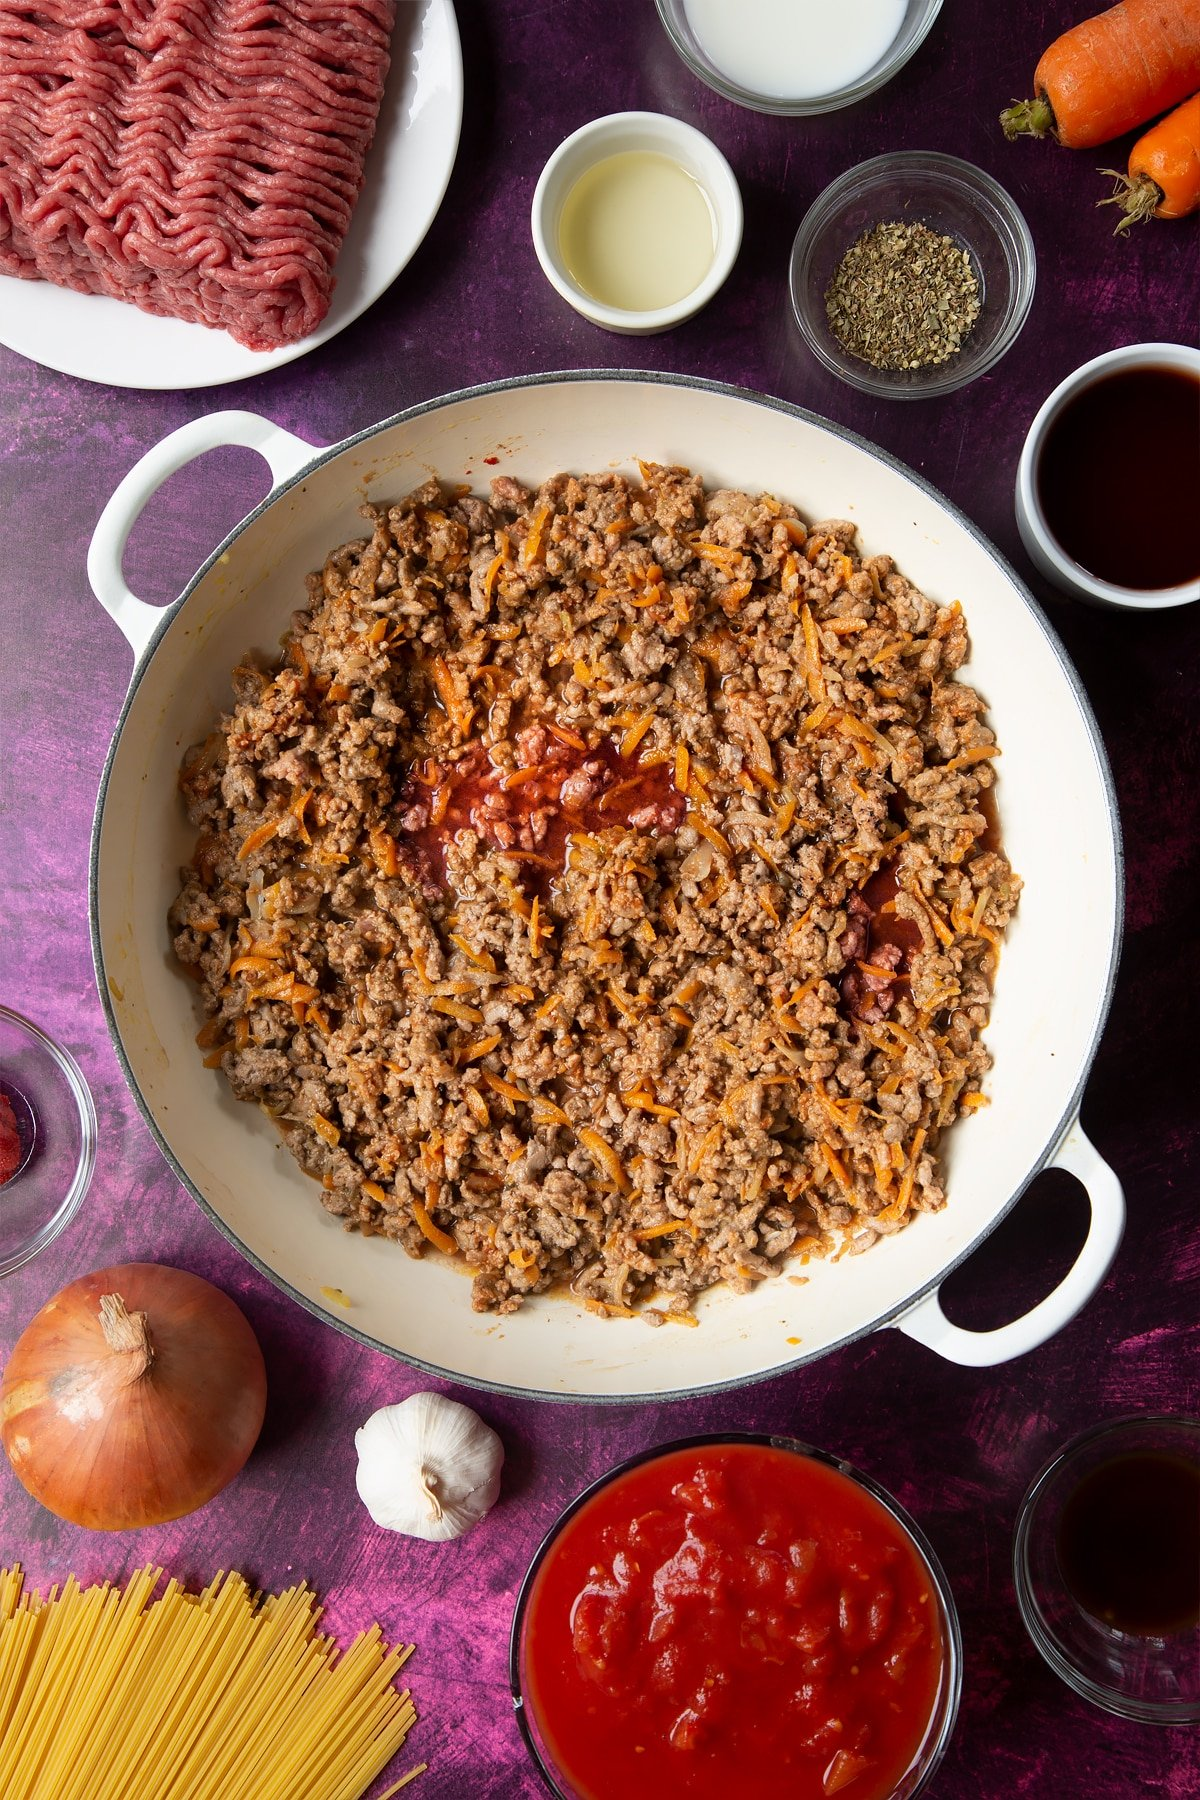 A large frying pan with fried carrot, onion, garlic, dried oregano, lean beef mince, tomato puree and red wine. Ingredients to make spaghetti bolognese Gordon Ramsay style surround the pan.